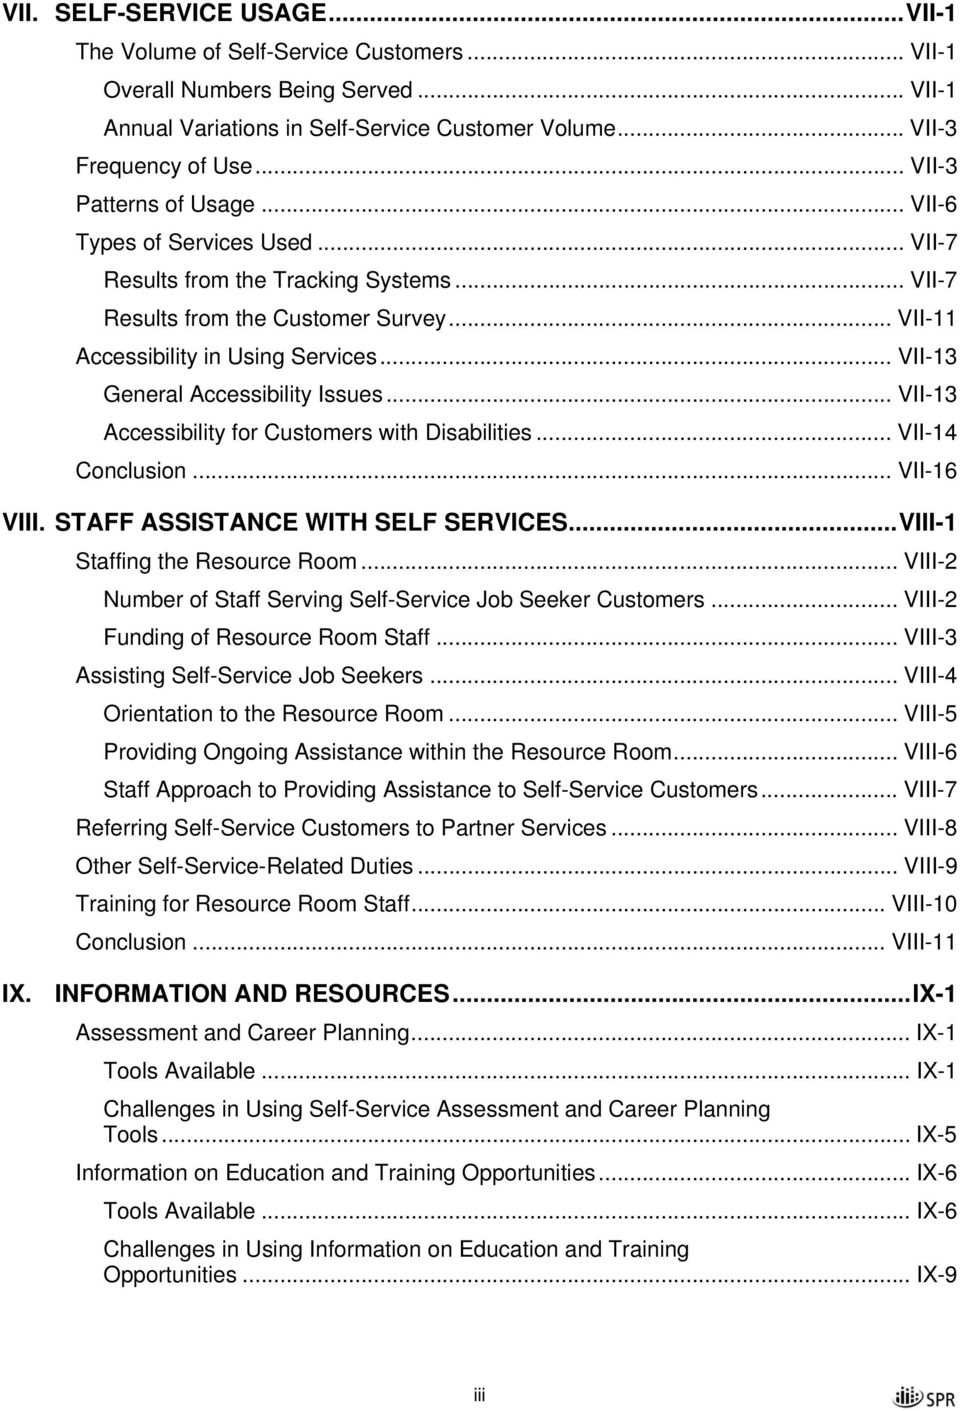 .. VII-13 General Accessibility Issues... VII-13 Accessibility for Customers with Disabilities... VII-14 Conclusion... VII-16 VIII. STAFF ASSISTANCE WITH SELF SERVICES.